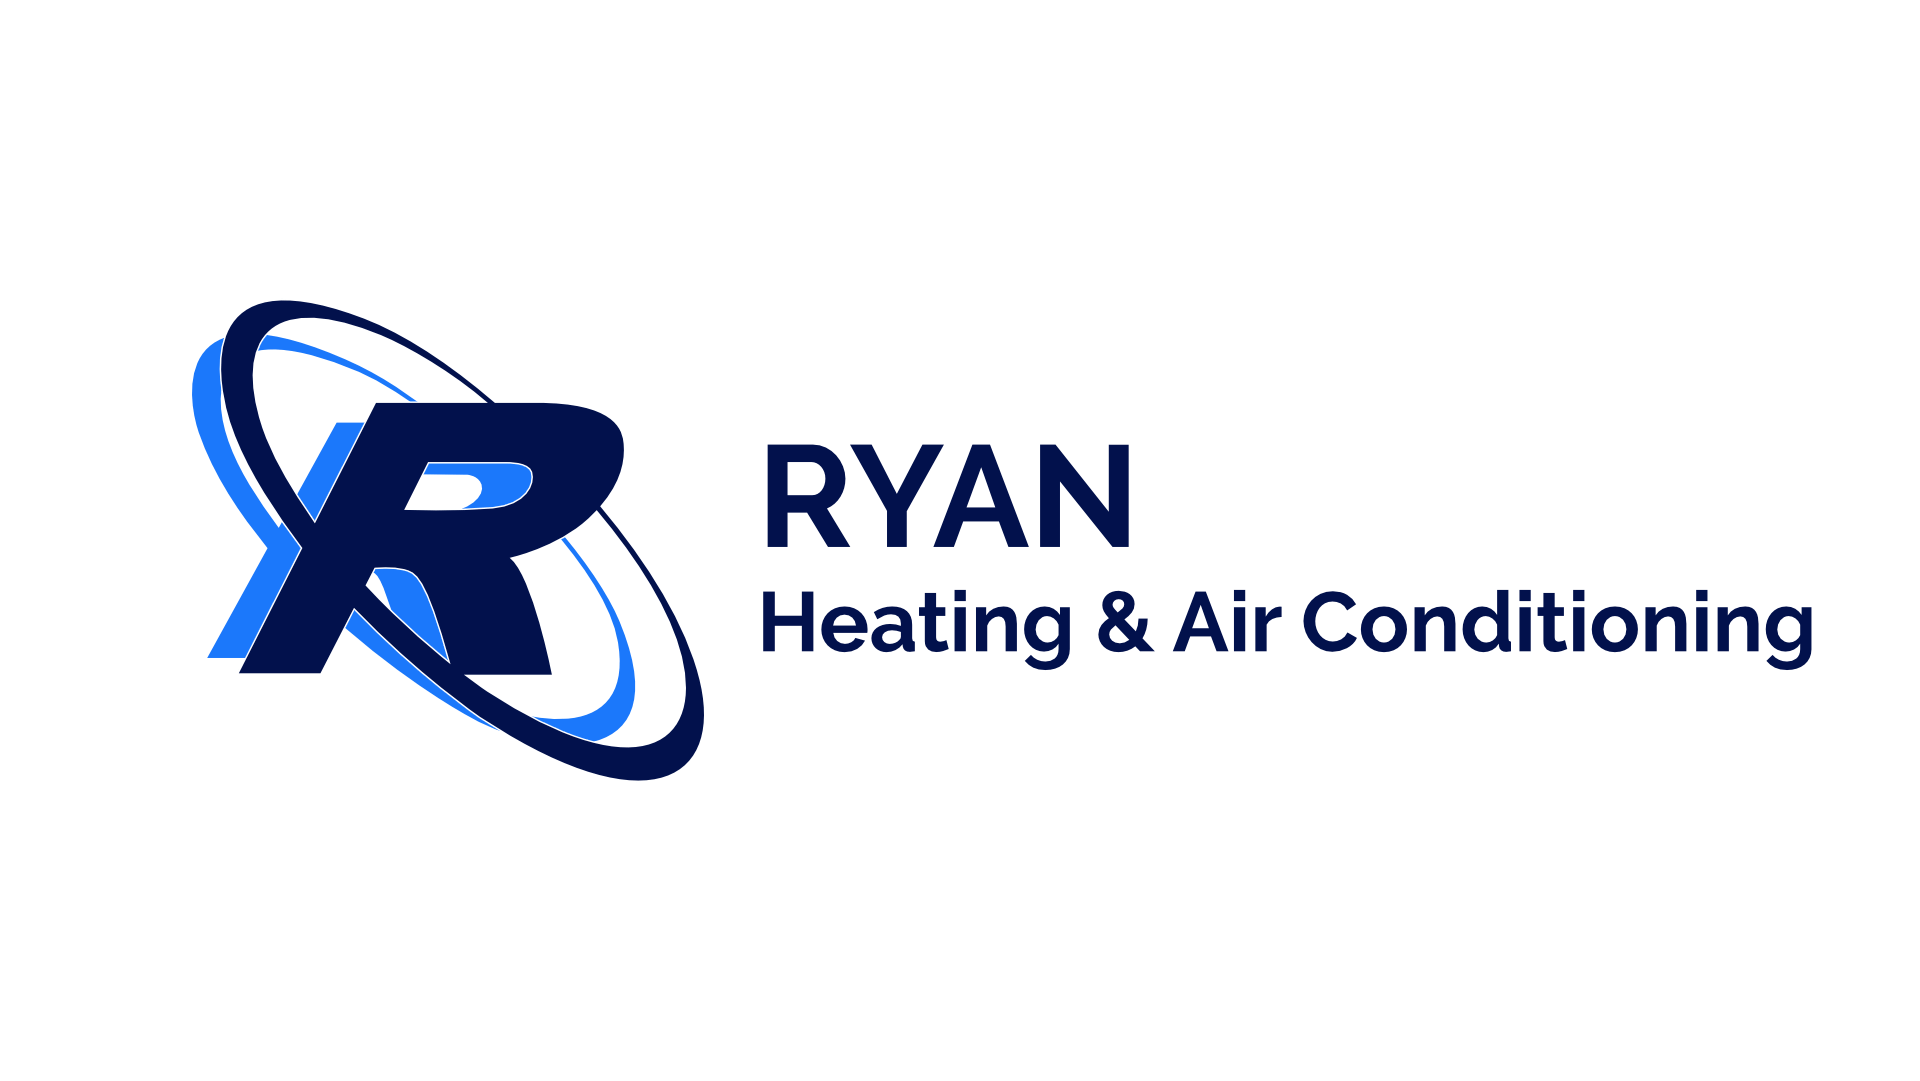 Ryan Heating by Socialectric Web Design